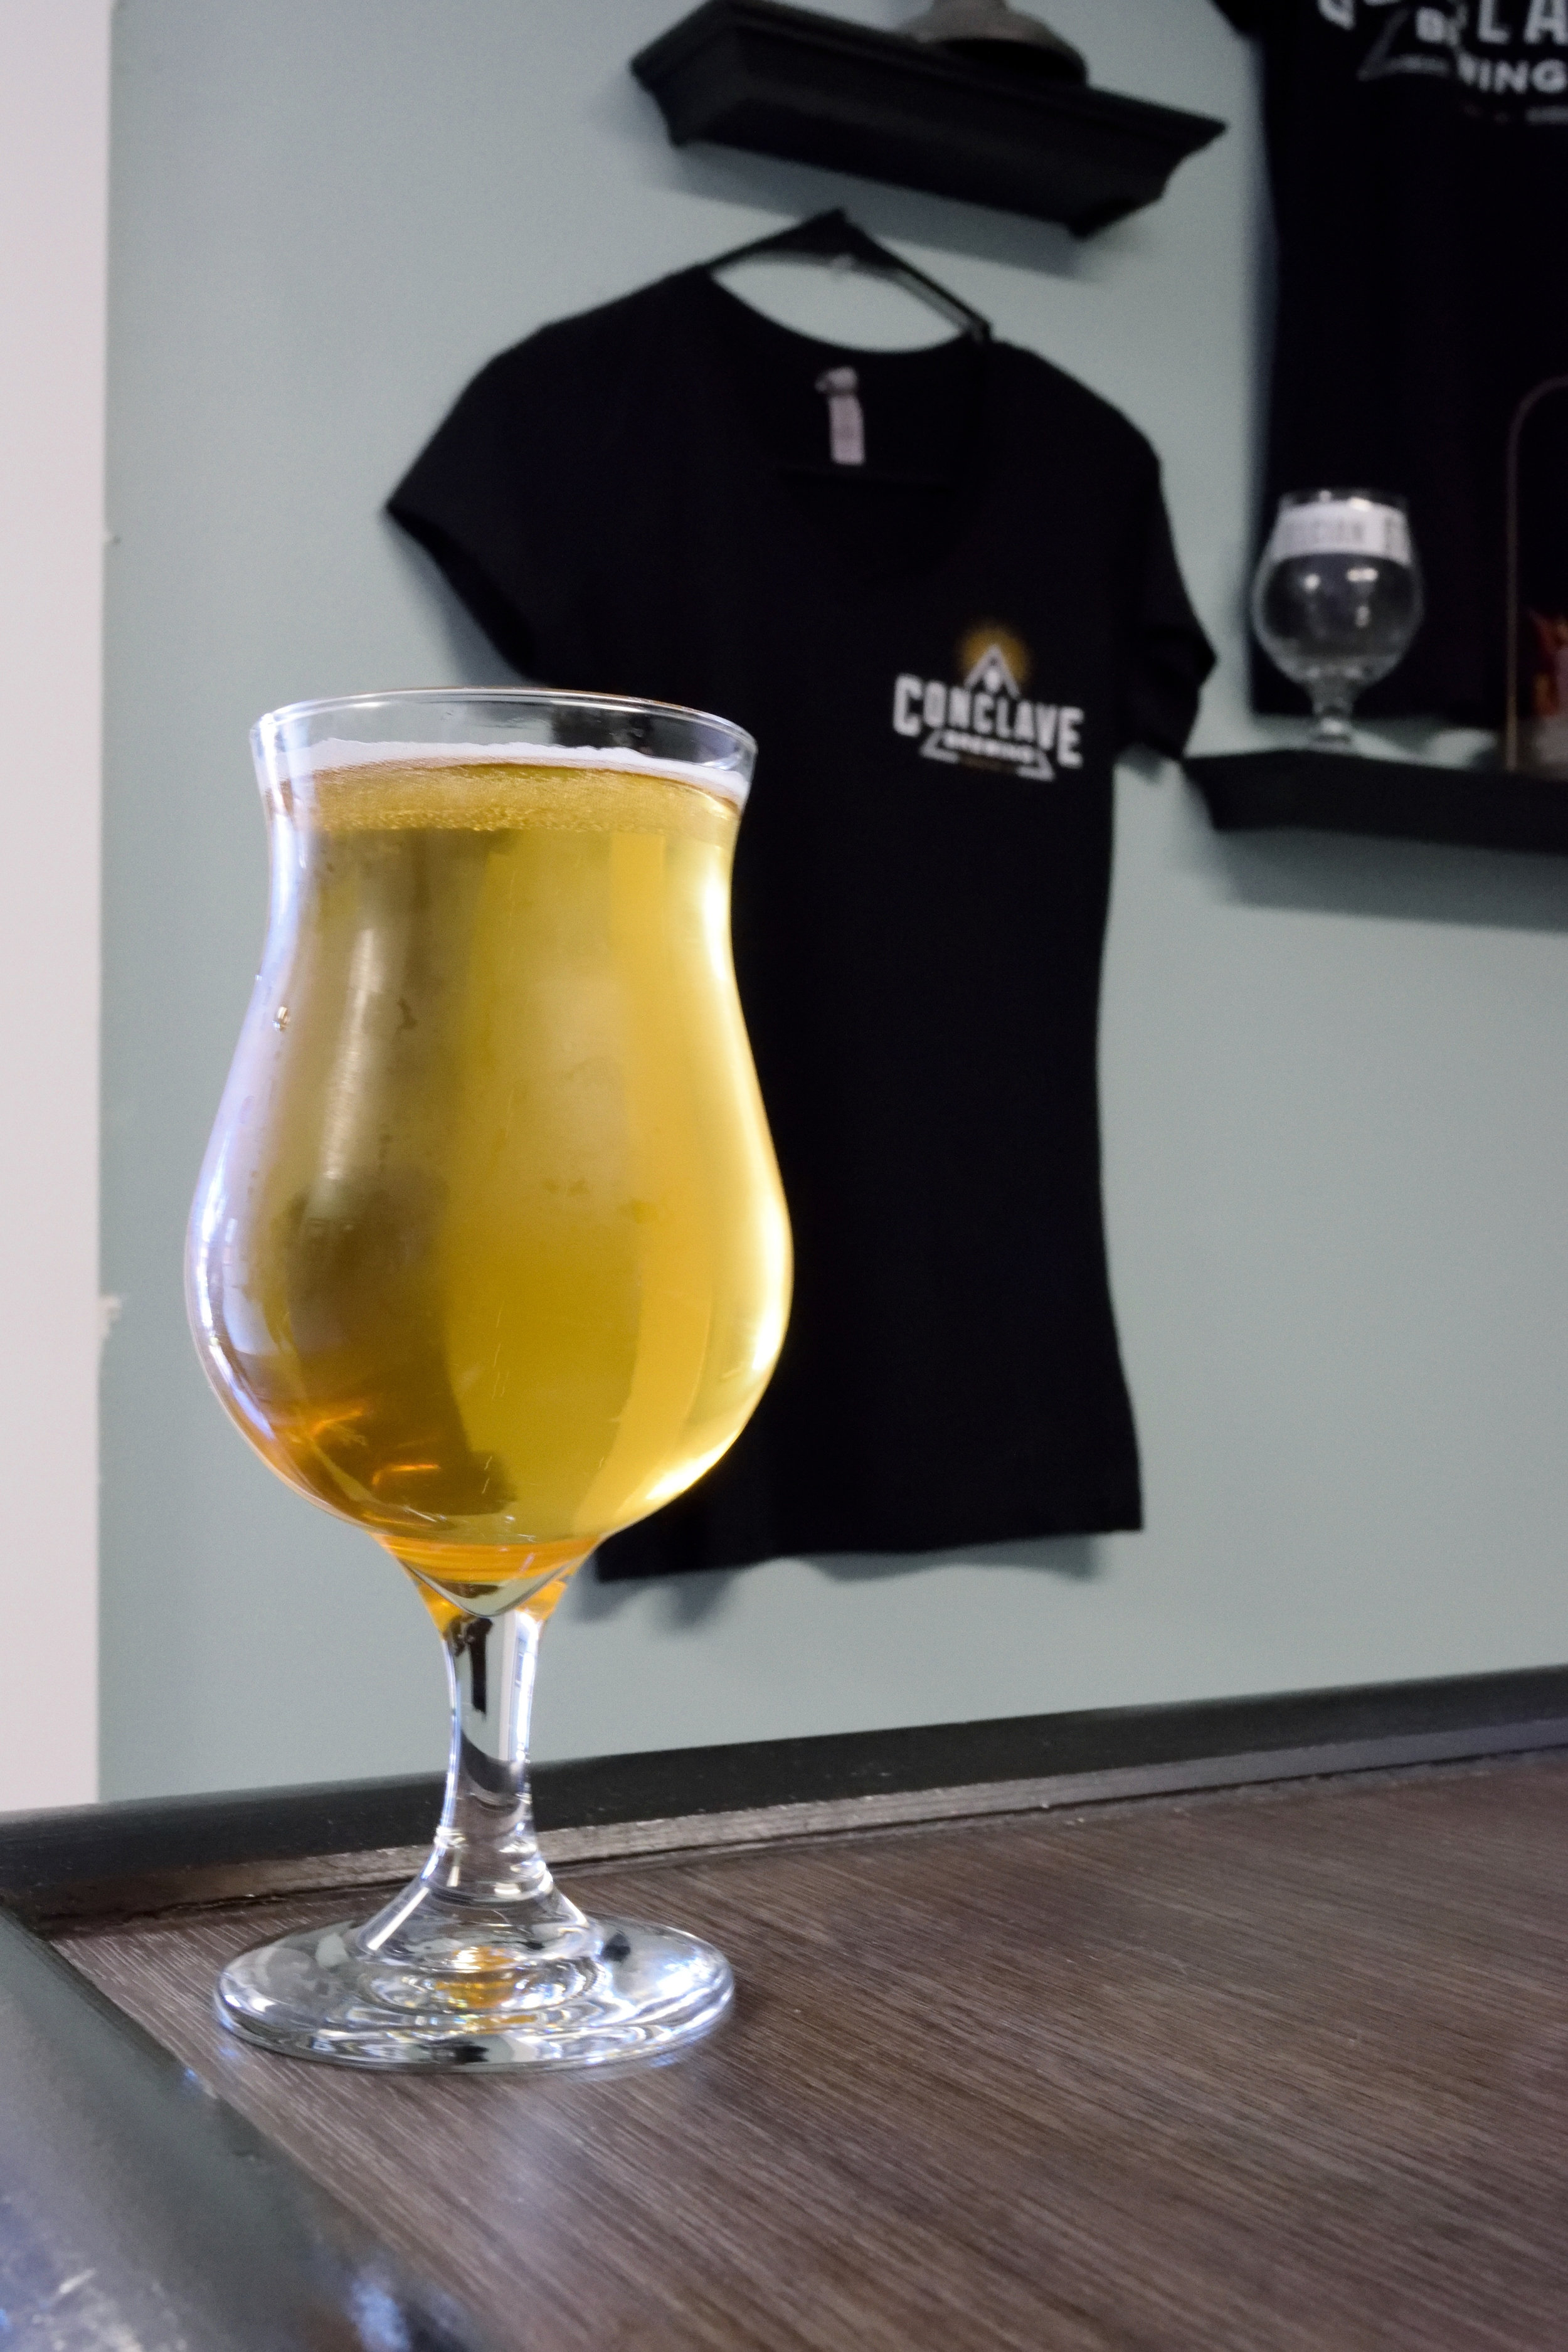 The American Blonde Ale - Heart of Glass.